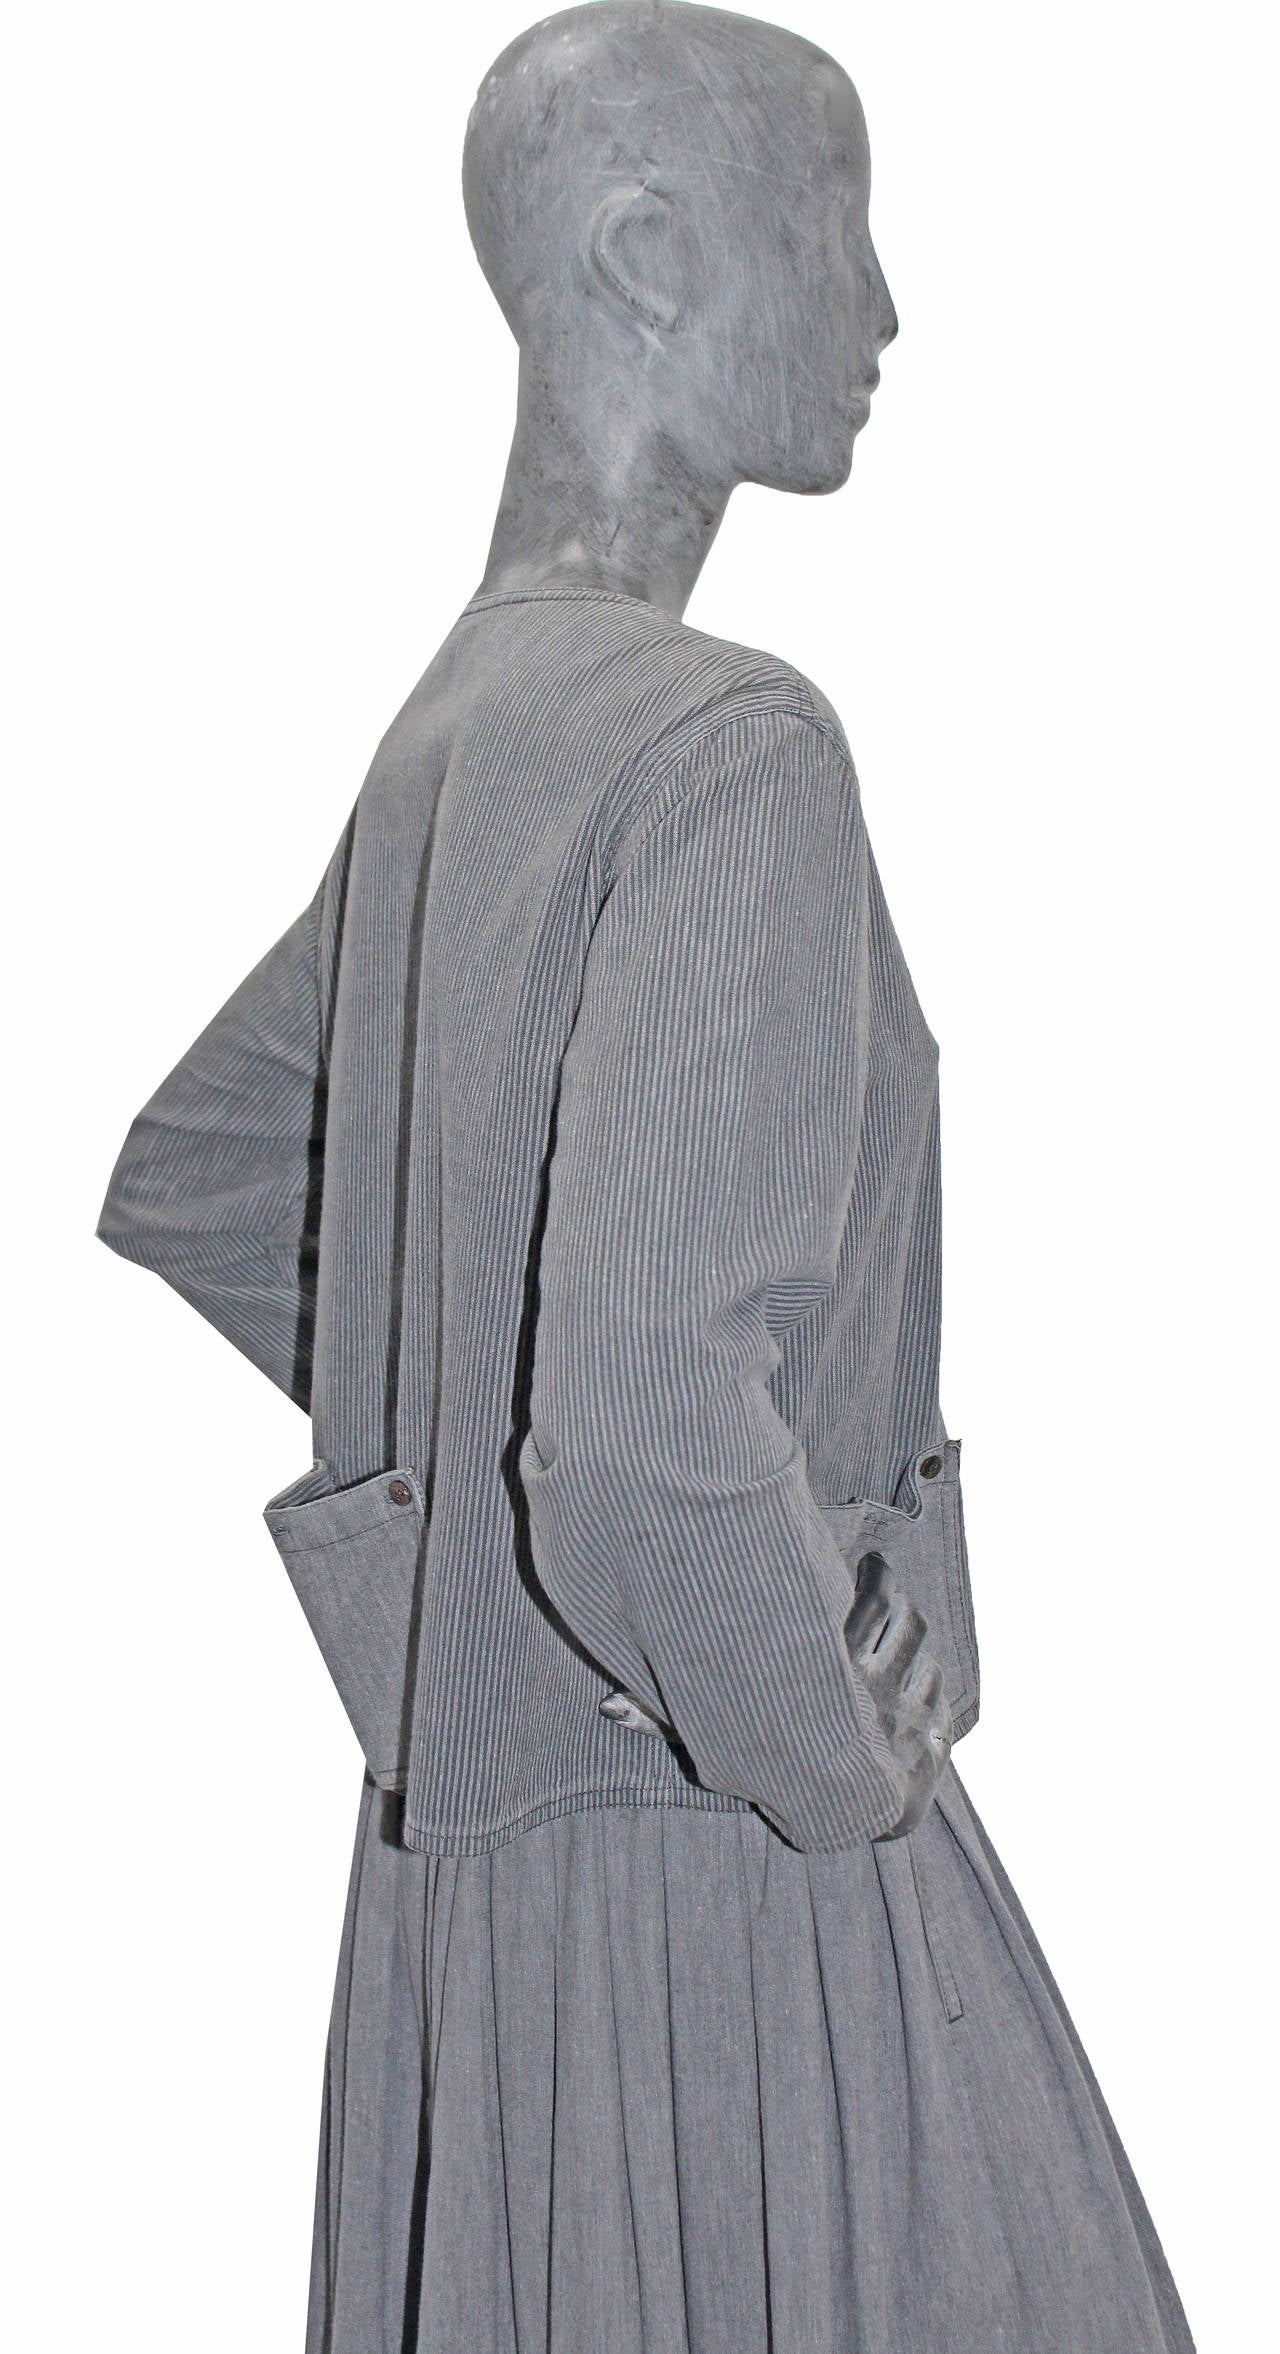 Gray Early Issey Miyake Sport Cotton Skirt Suit c. 1970s For Sale